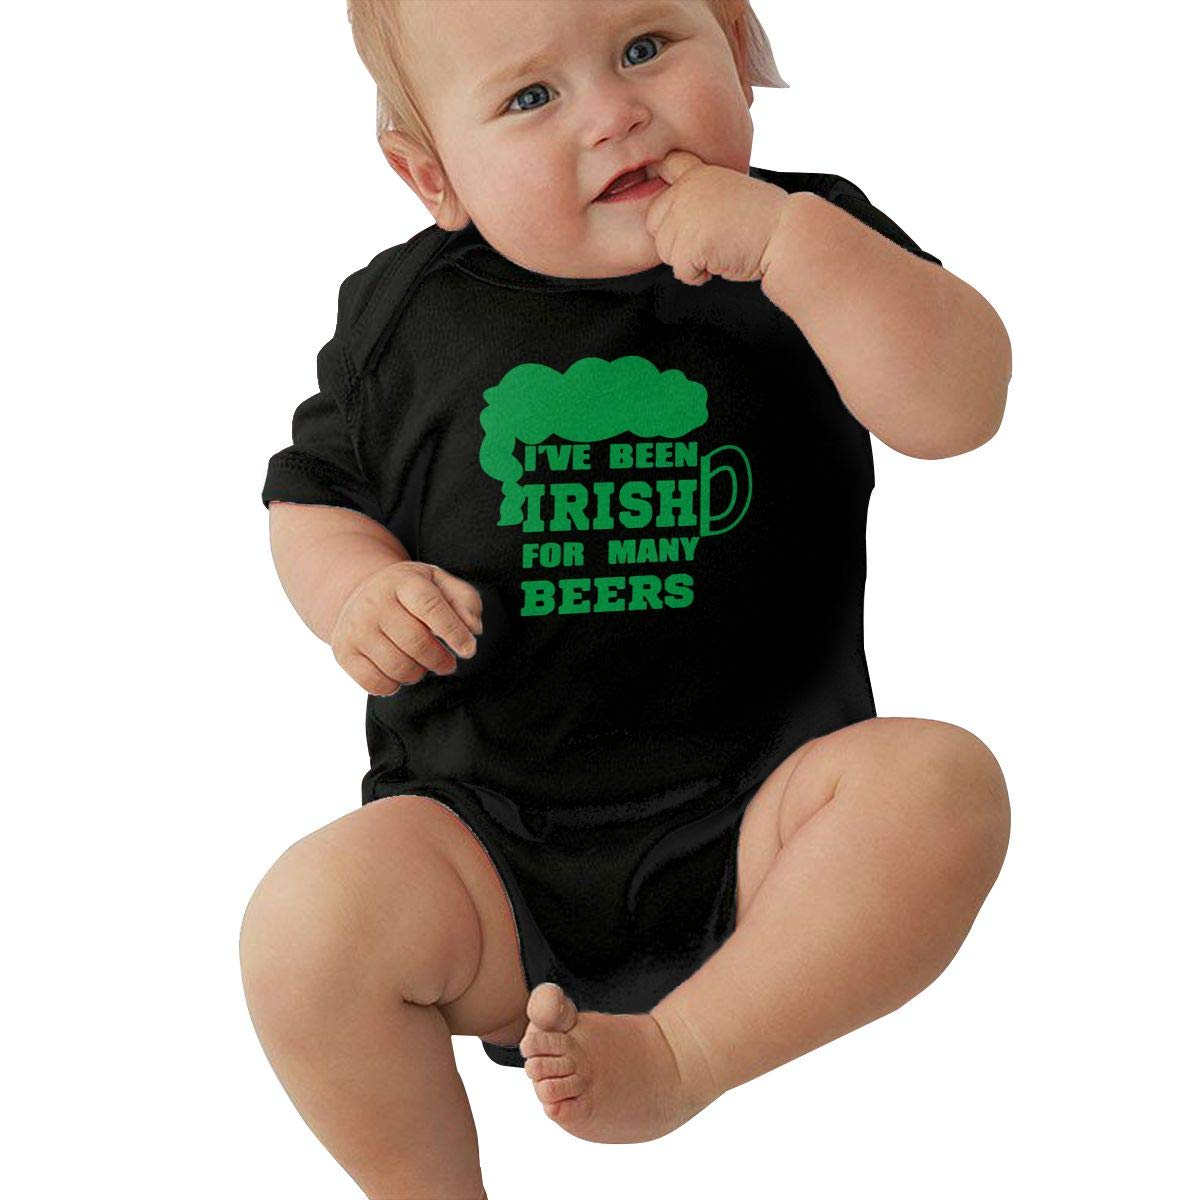 LBJQ9 I Have Been Irish for Many Beers Newborn Kids Baby Boys Sleep and Play Short Sleeve Bodysuit Jumpsuit Outfits